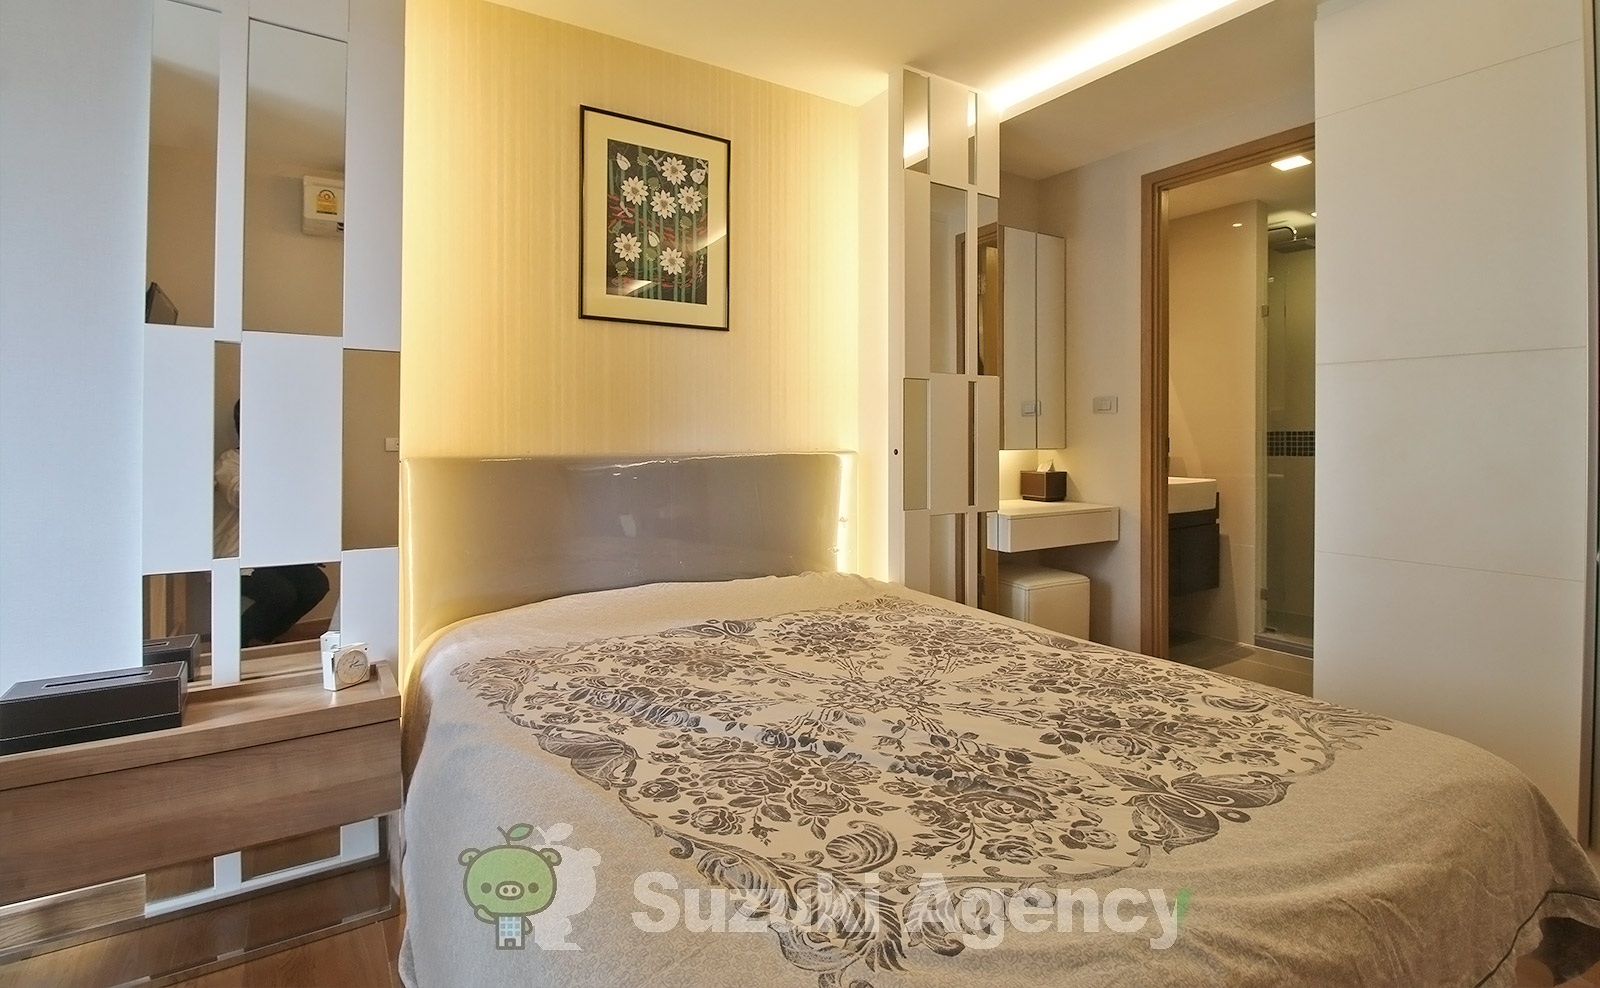 InterLux Premier Sukhumvit 13:1Bed Room Photos No.8